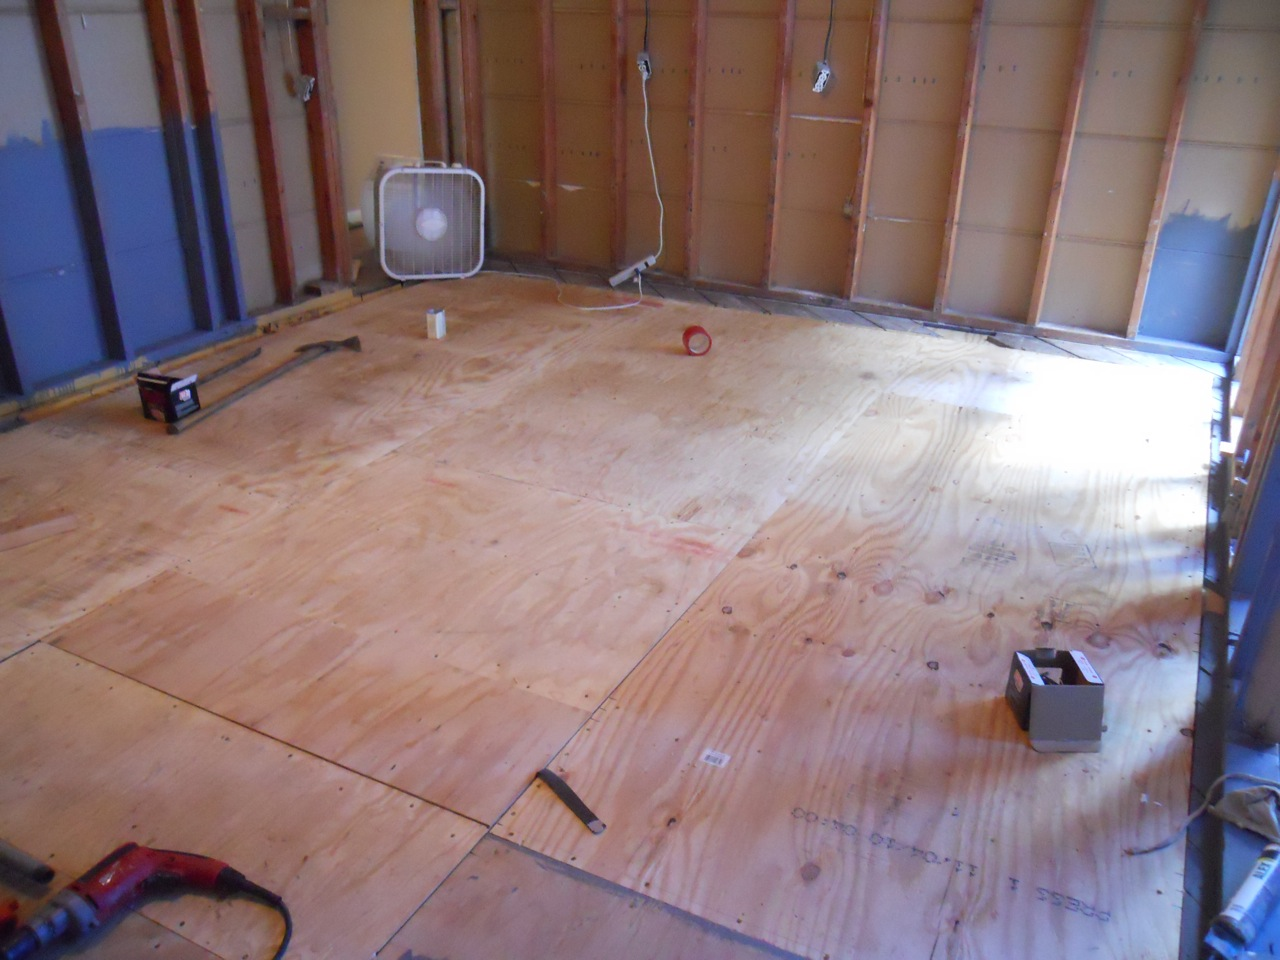 1985 Square Feet Vapor Barrier Check Subfloor Check